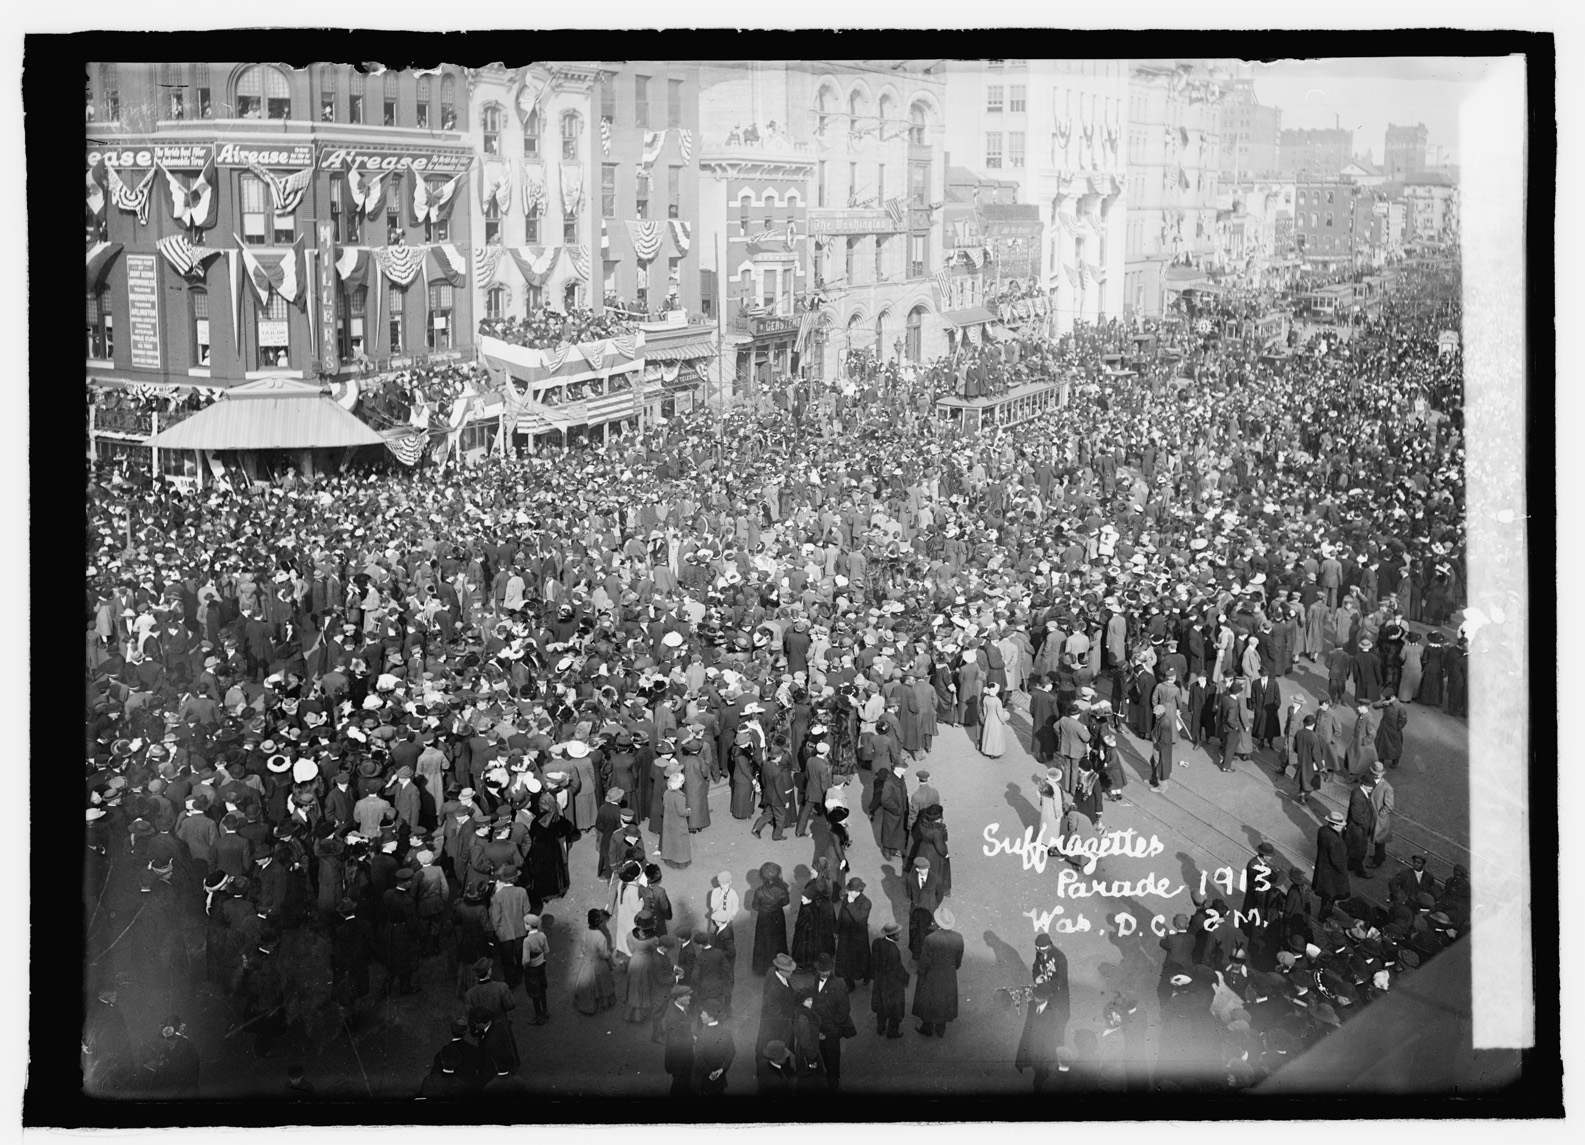 A black and white photograph shows a broad city street filled with people and no cars, seen from above. People generally wear long skirts or coats and hats. The buildings are decorated with half-circle flags draped from windows. Words in cursive in the lower right hand corner read